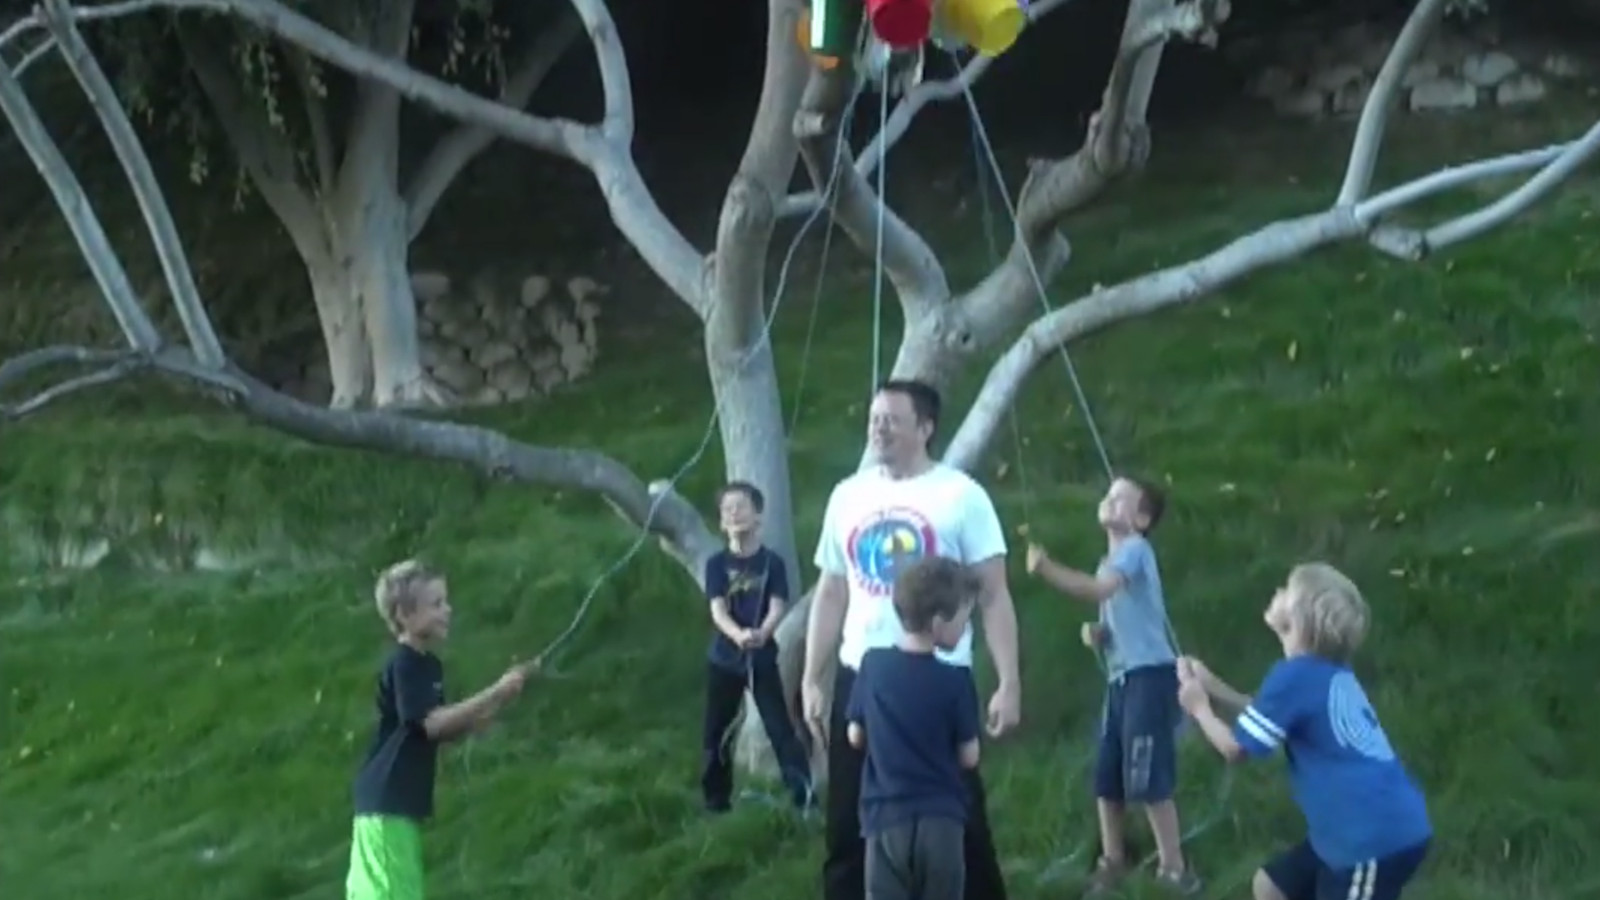 Elon Musk Enlists His Five Sons To Help Complete The Ice